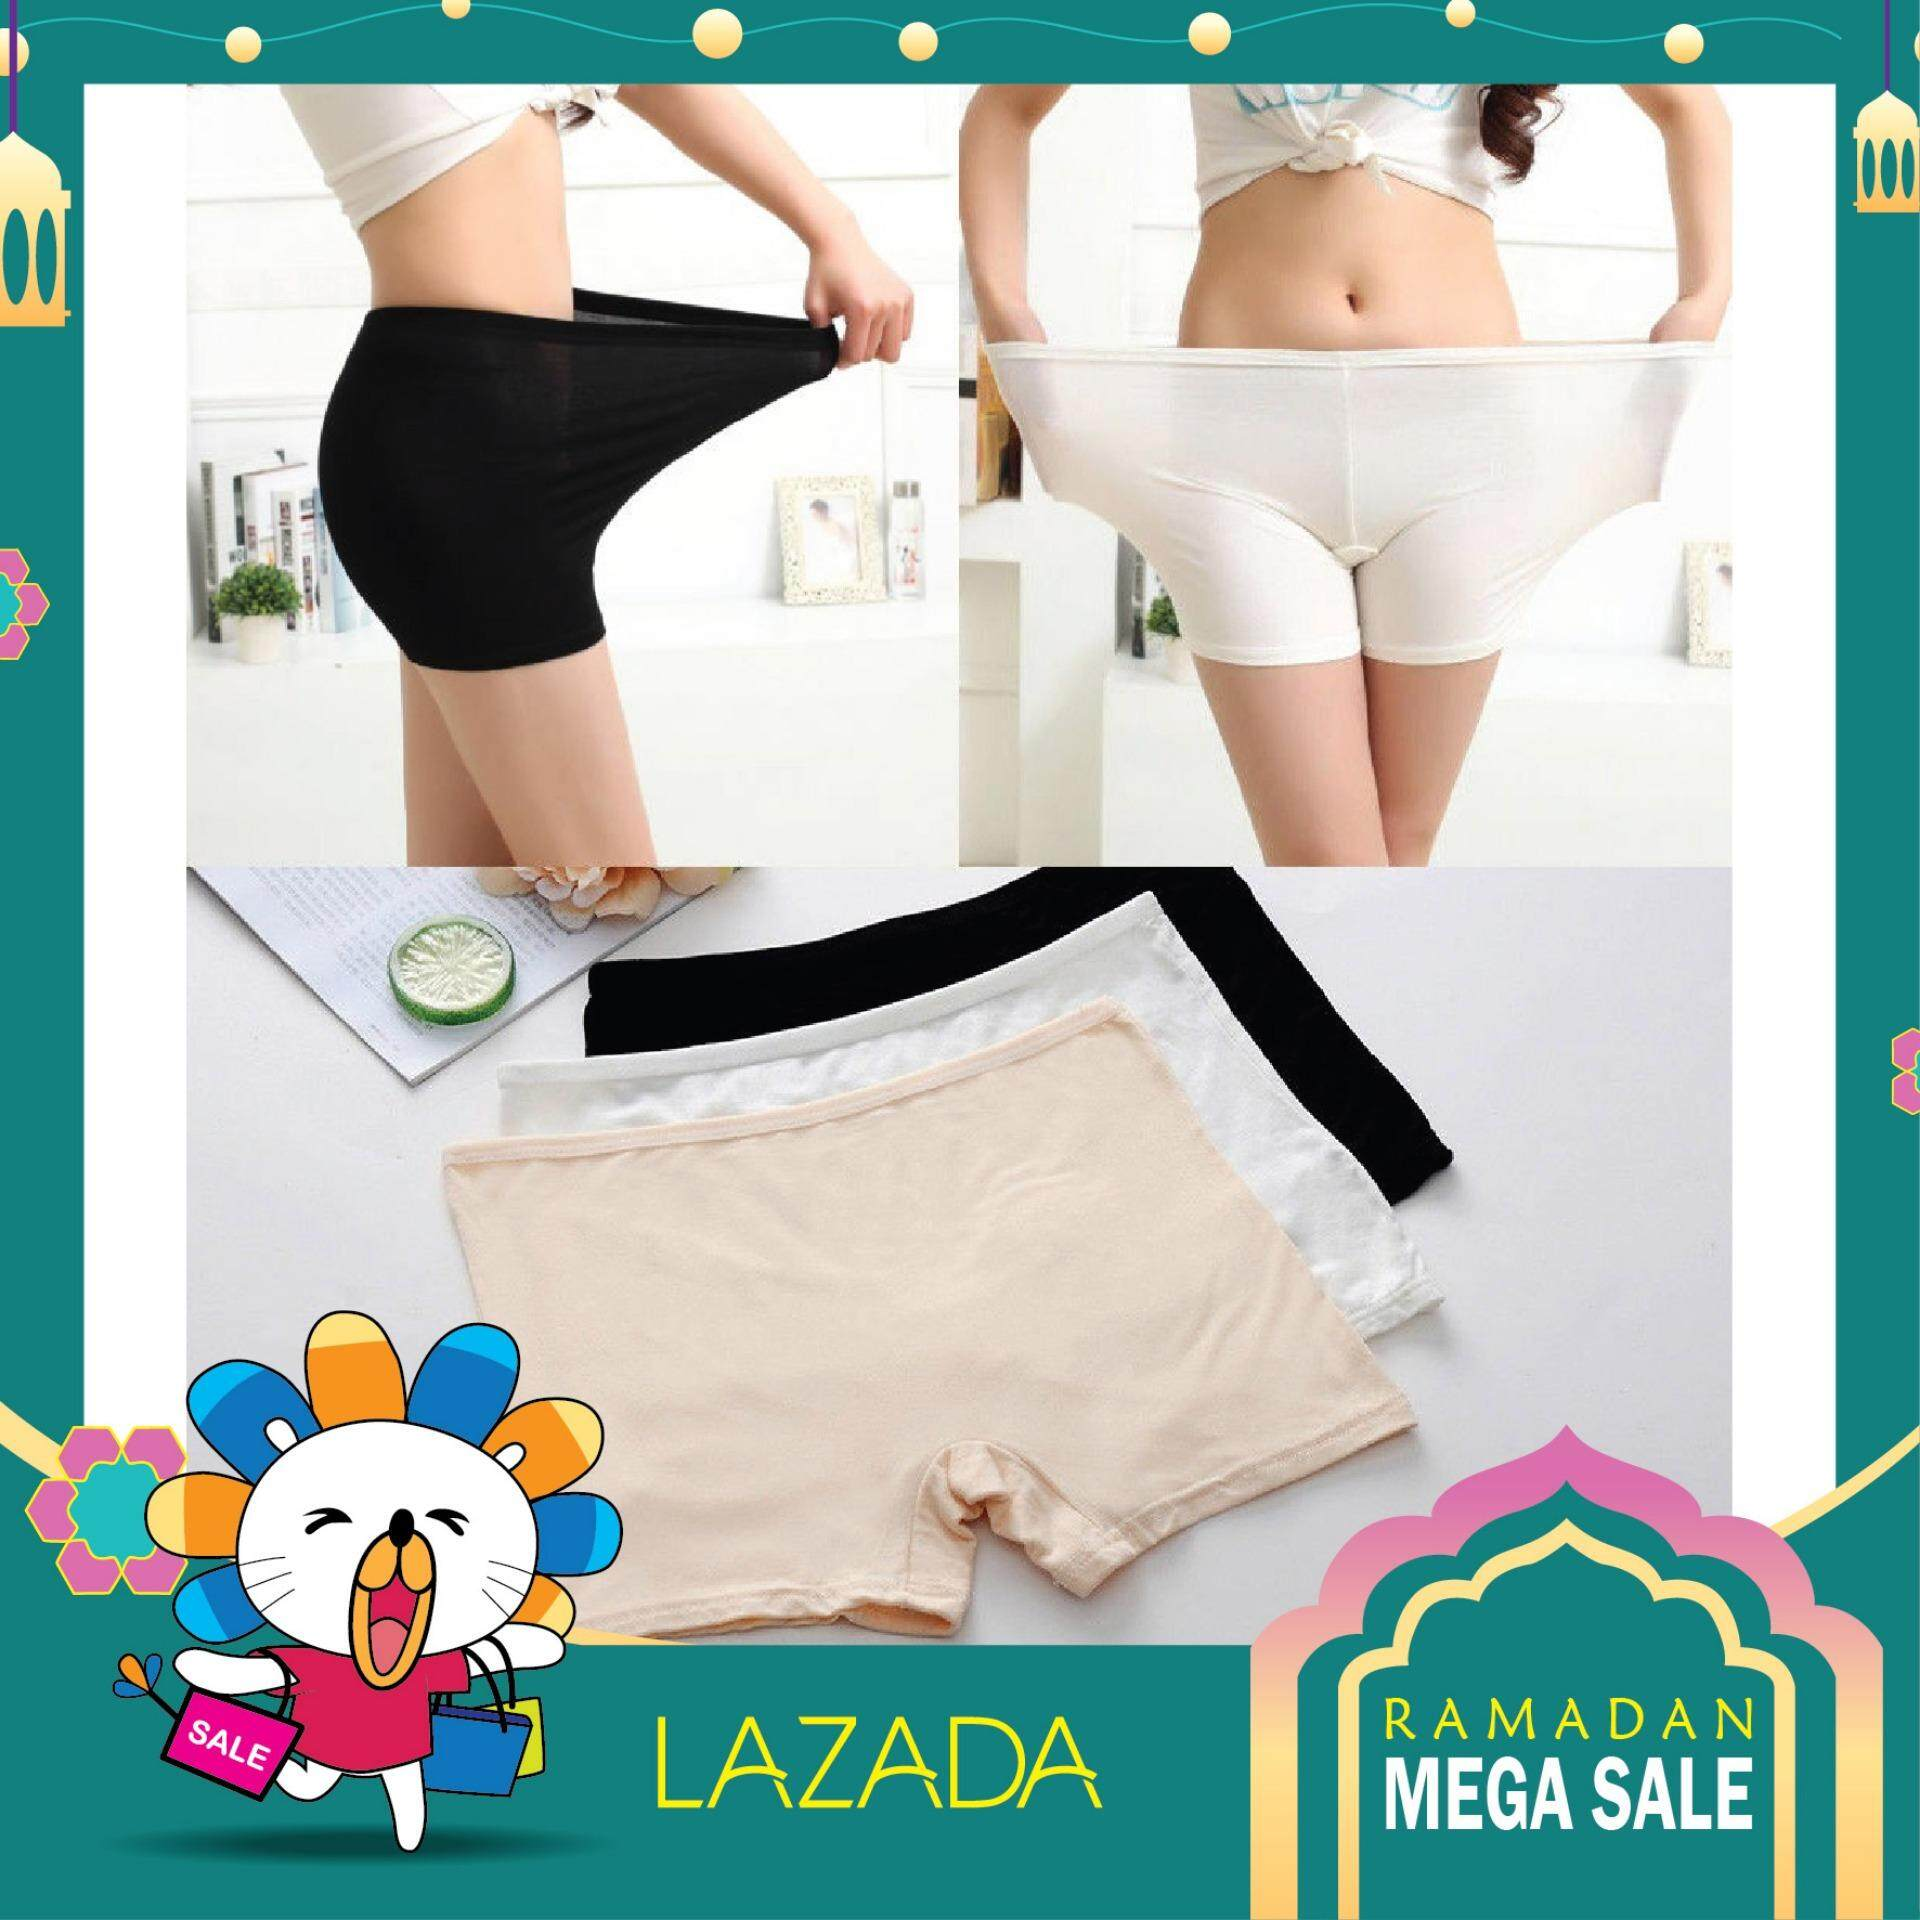 ba59b7729 Safety Shorts Women Lady Fashion Pants Leggings Seamless Basic Plain  Underwear